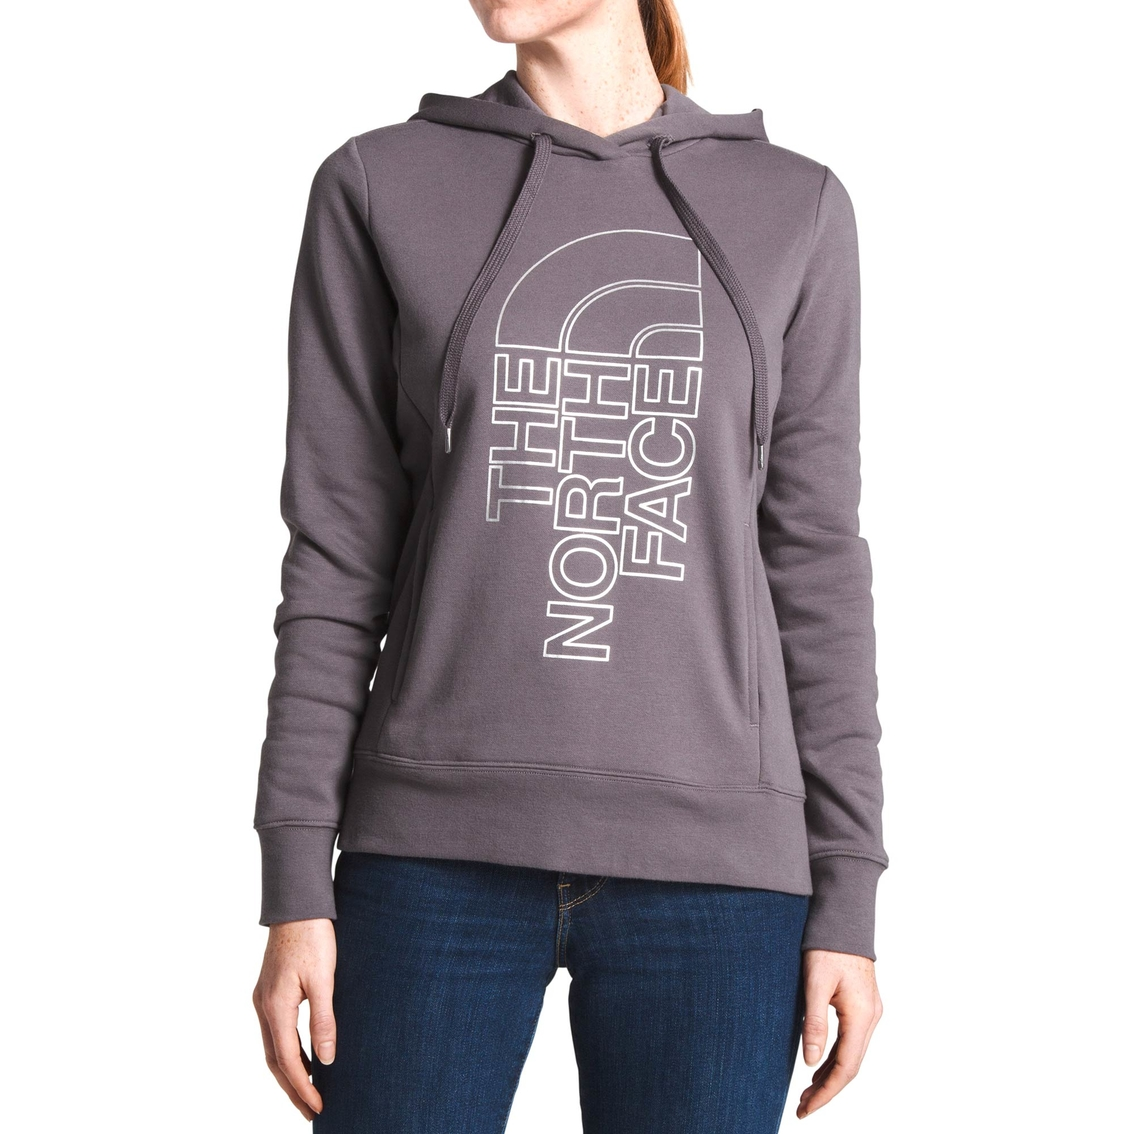 c8ce3cc62 The North Face Trivert Pullover Hoodie | Hoodies & Sweatshirts ...